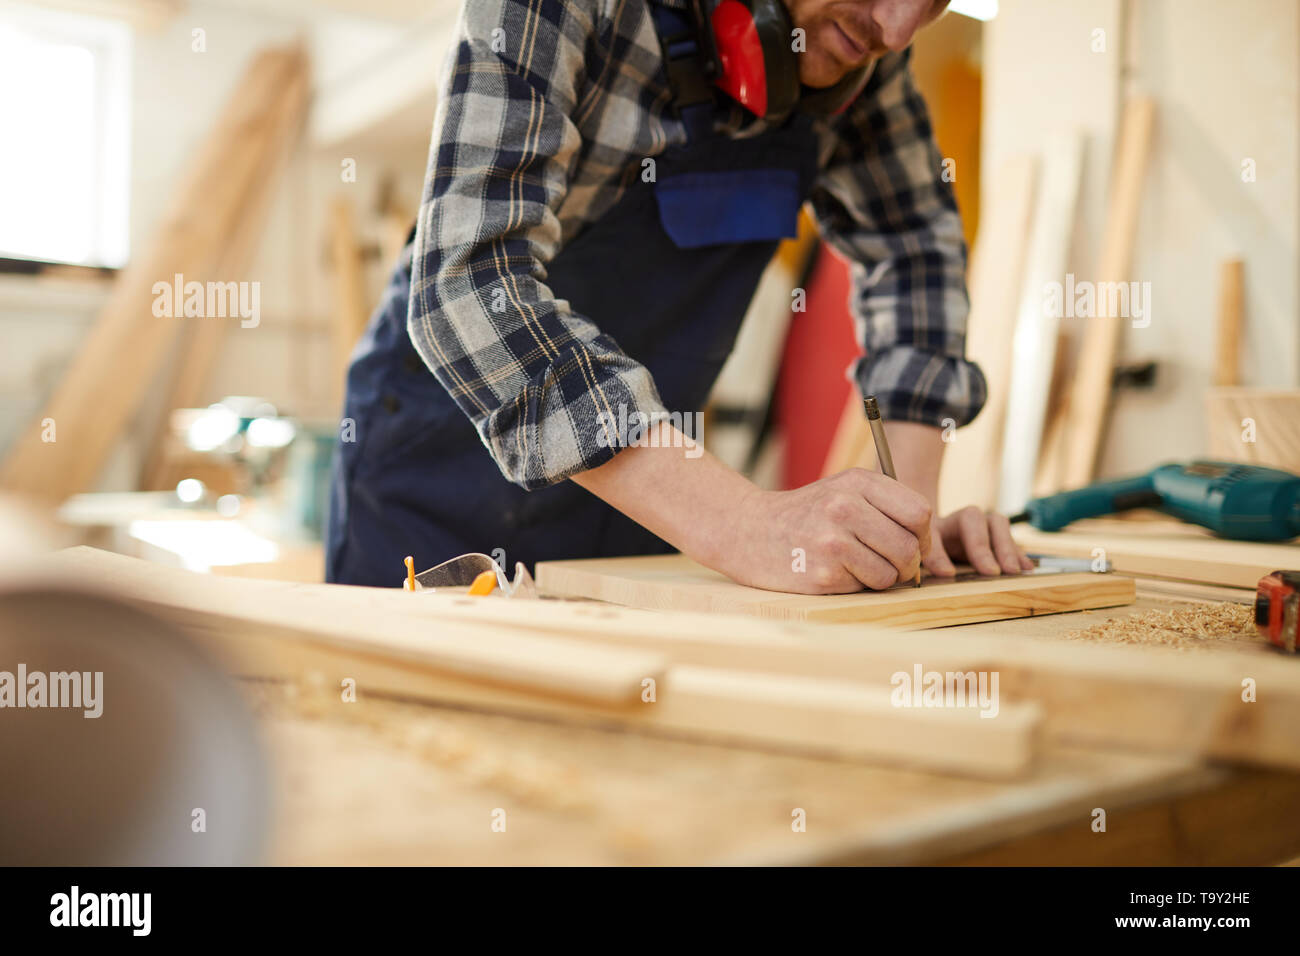 Mid section portrait of unrecognizable carpenter marking wood while working in joinery lit by sunlight, copy space - Stock Image